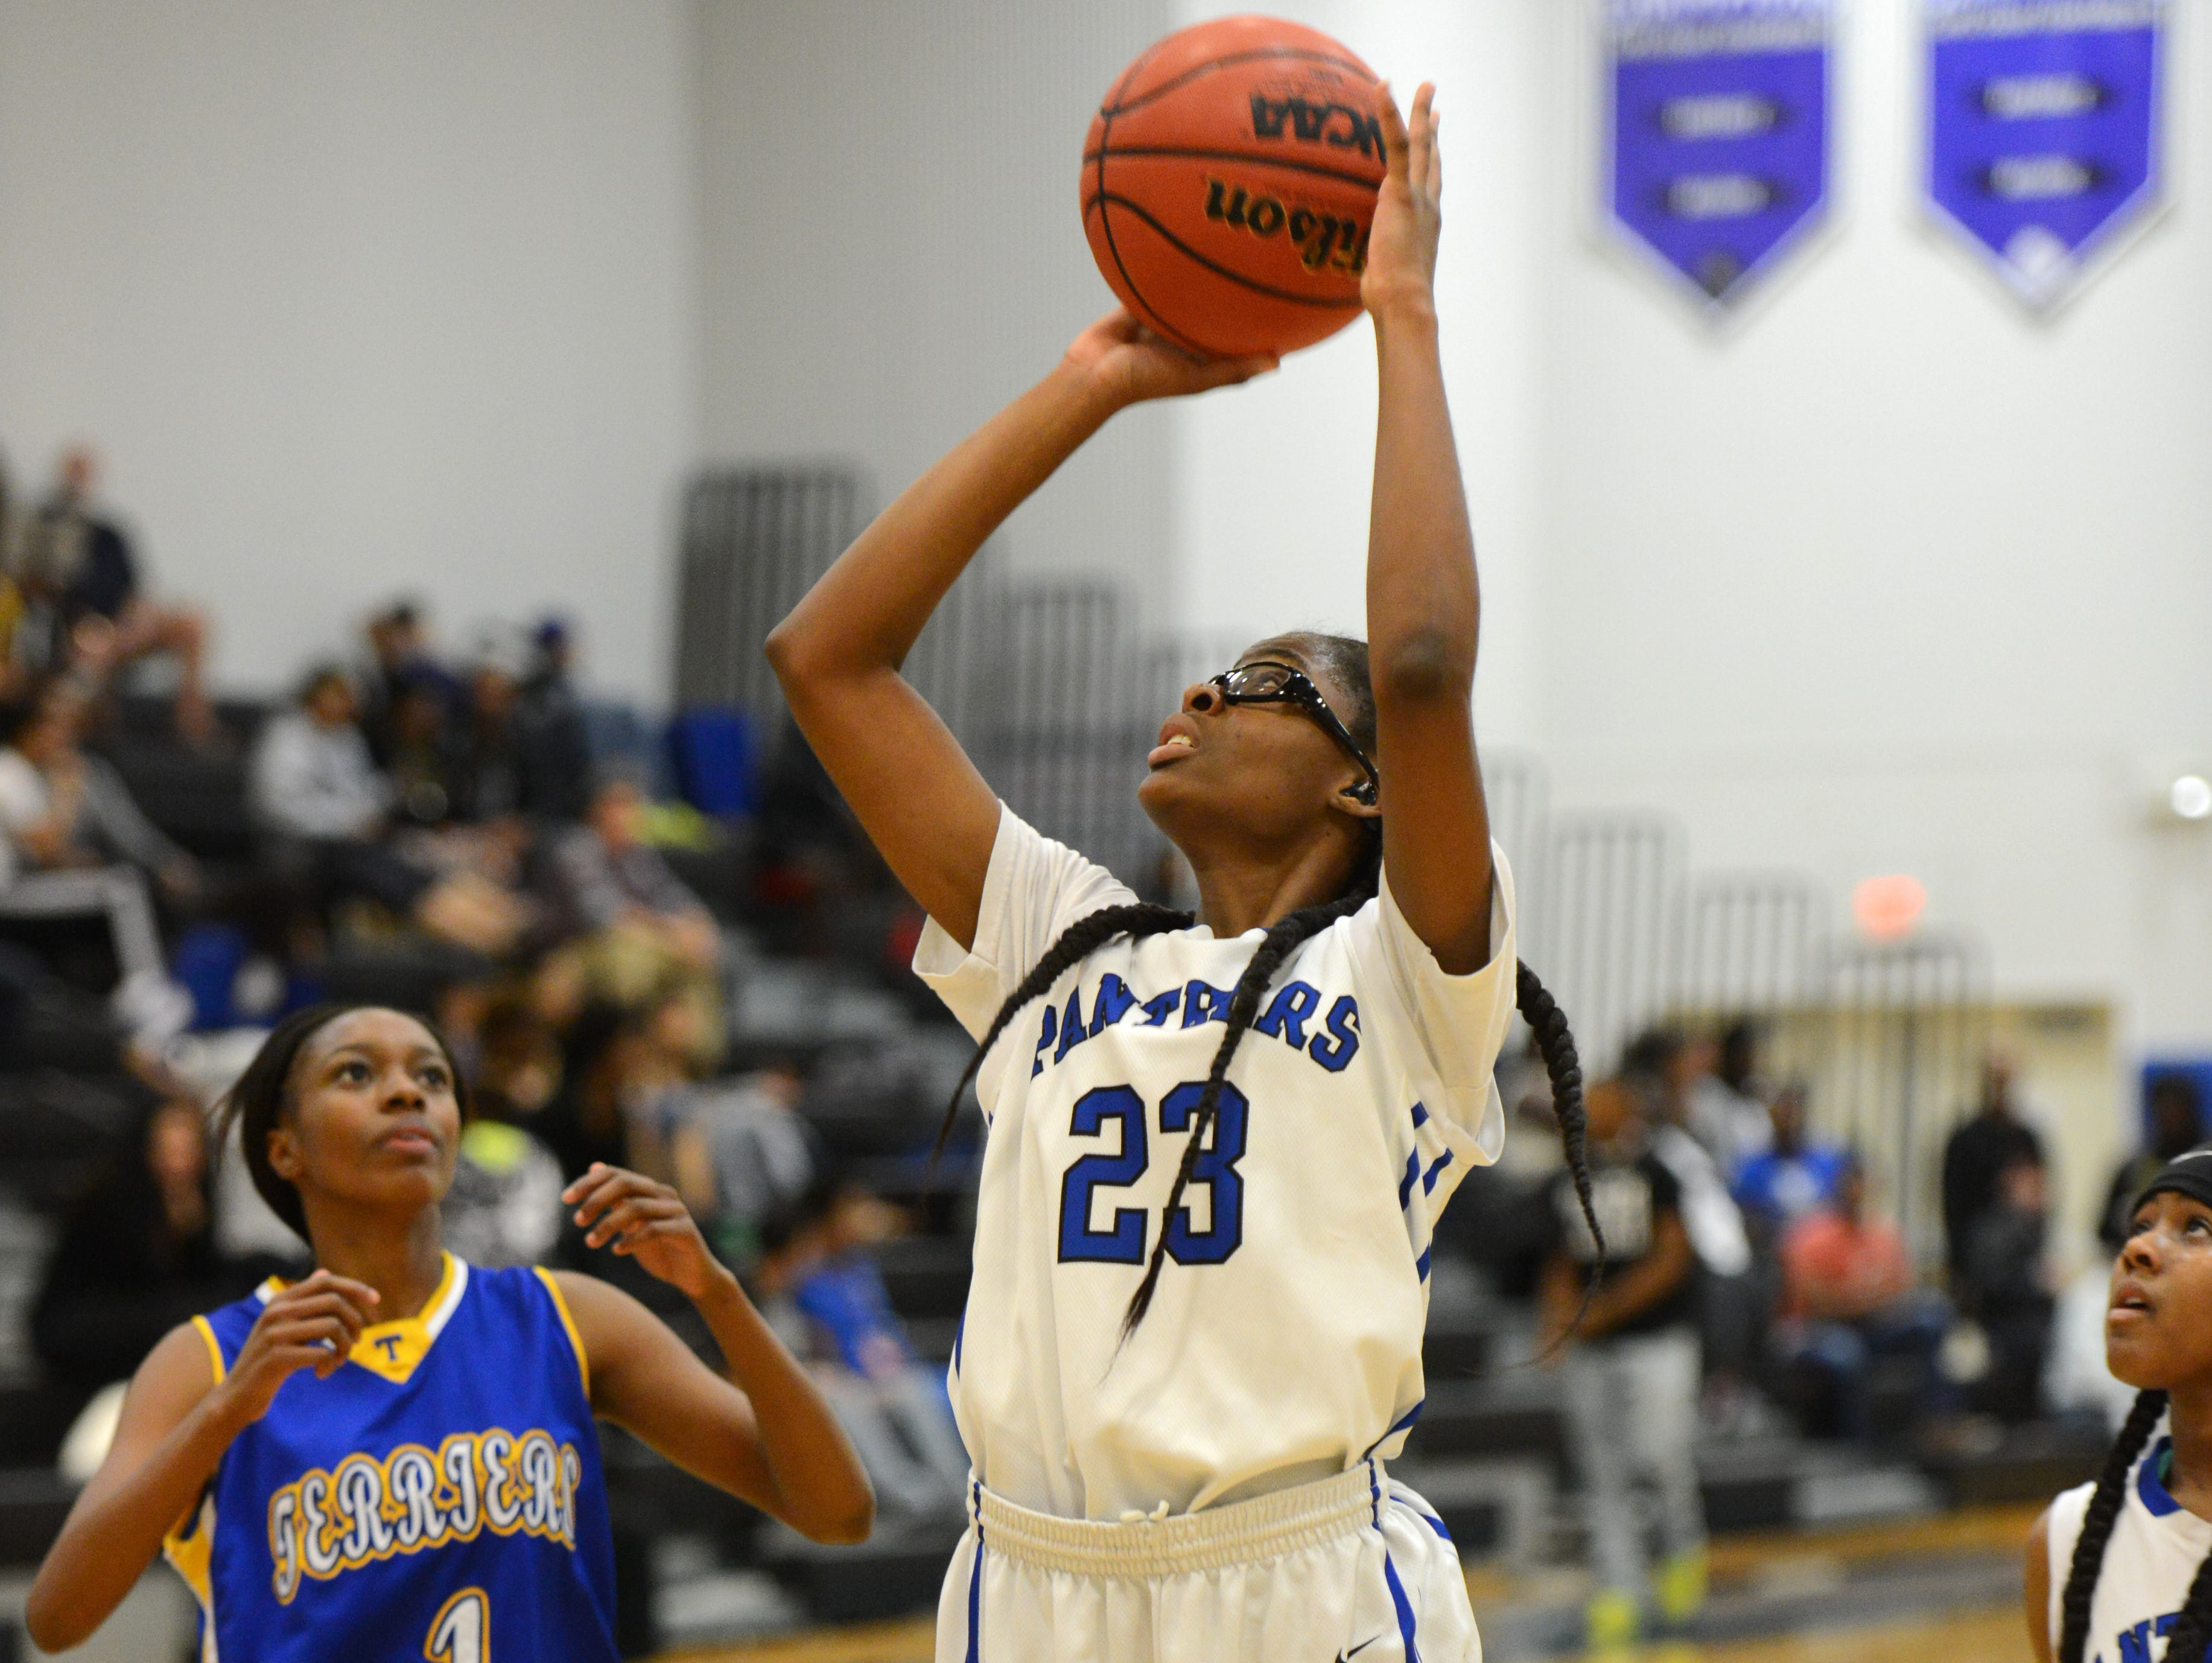 Macoyah Barry of Heritage High takes a shot during a recent game.